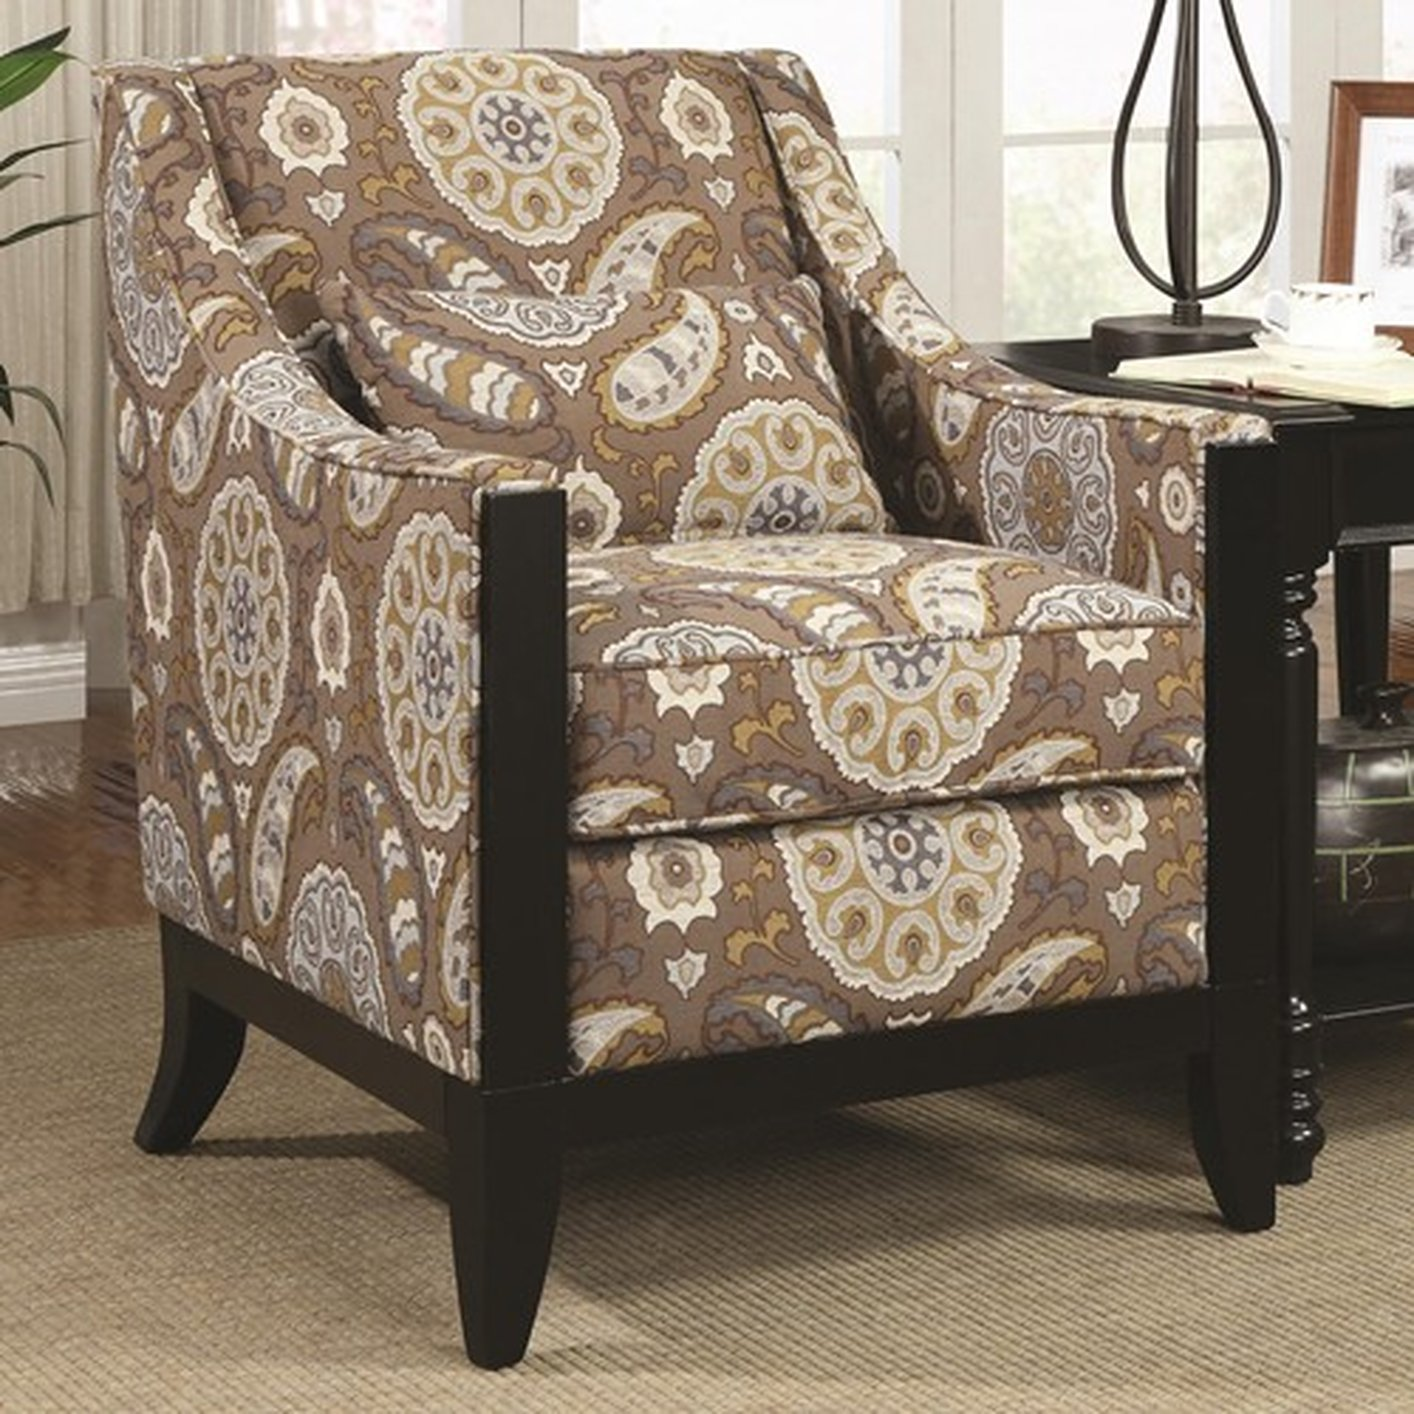 Sofa Outlet Paisley Beige Fabric Accent Chair